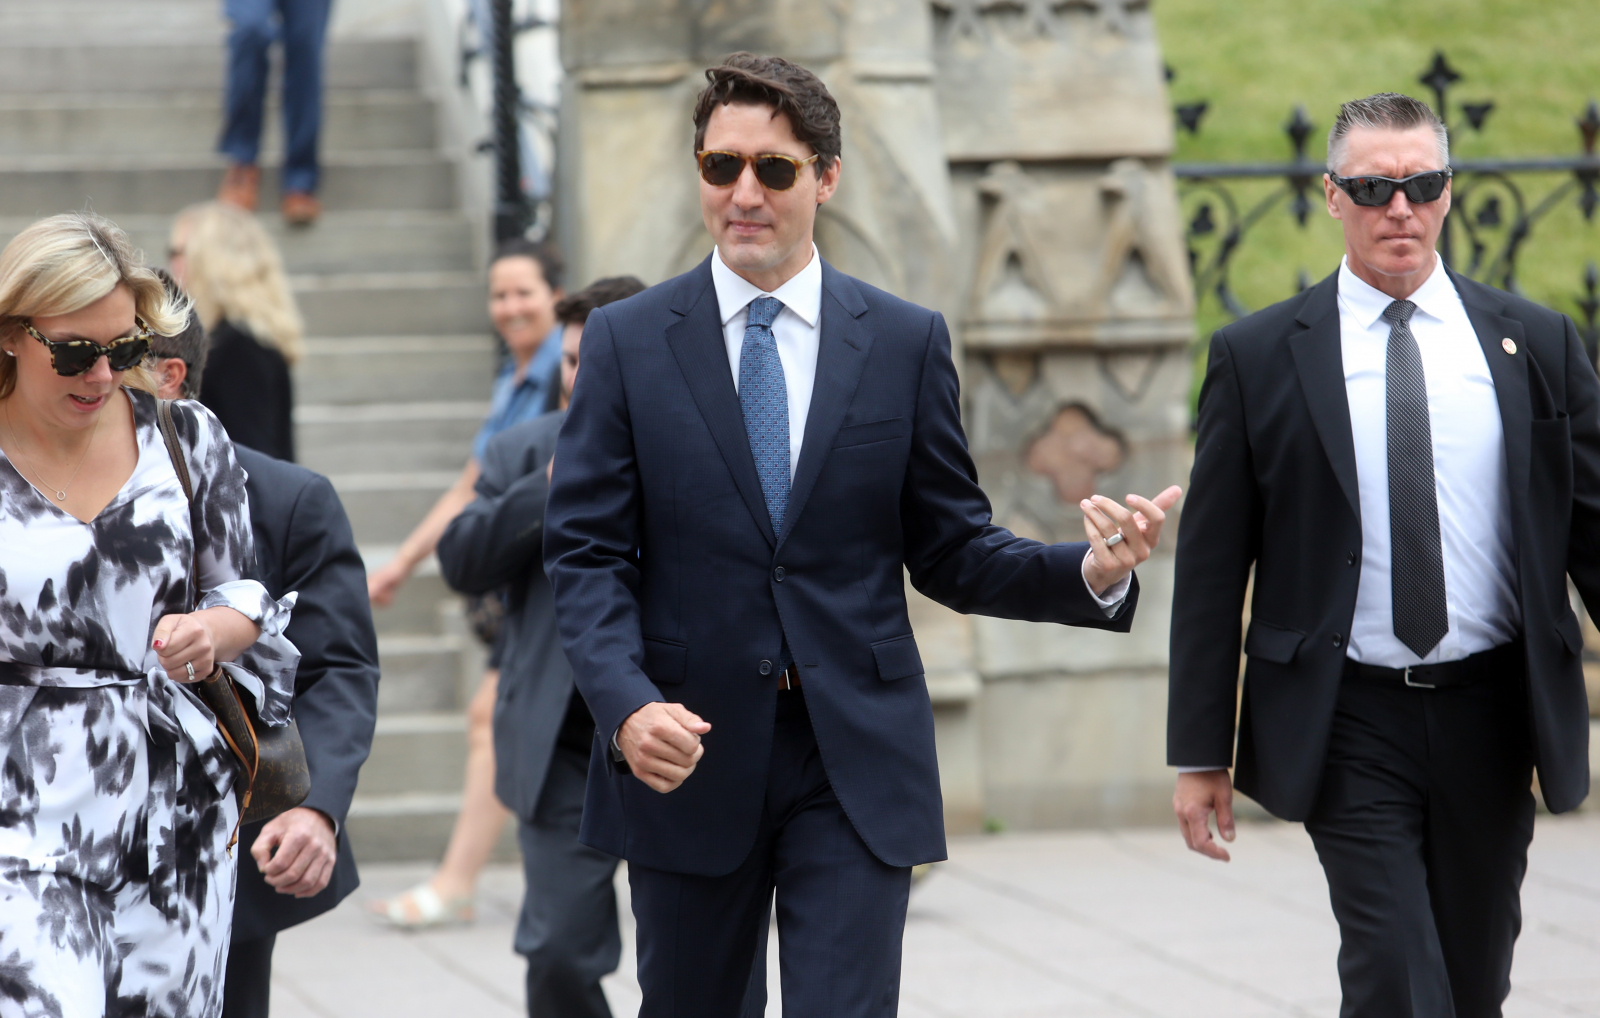 Trudeau's lavish vacation broke ethics rules: watchdog